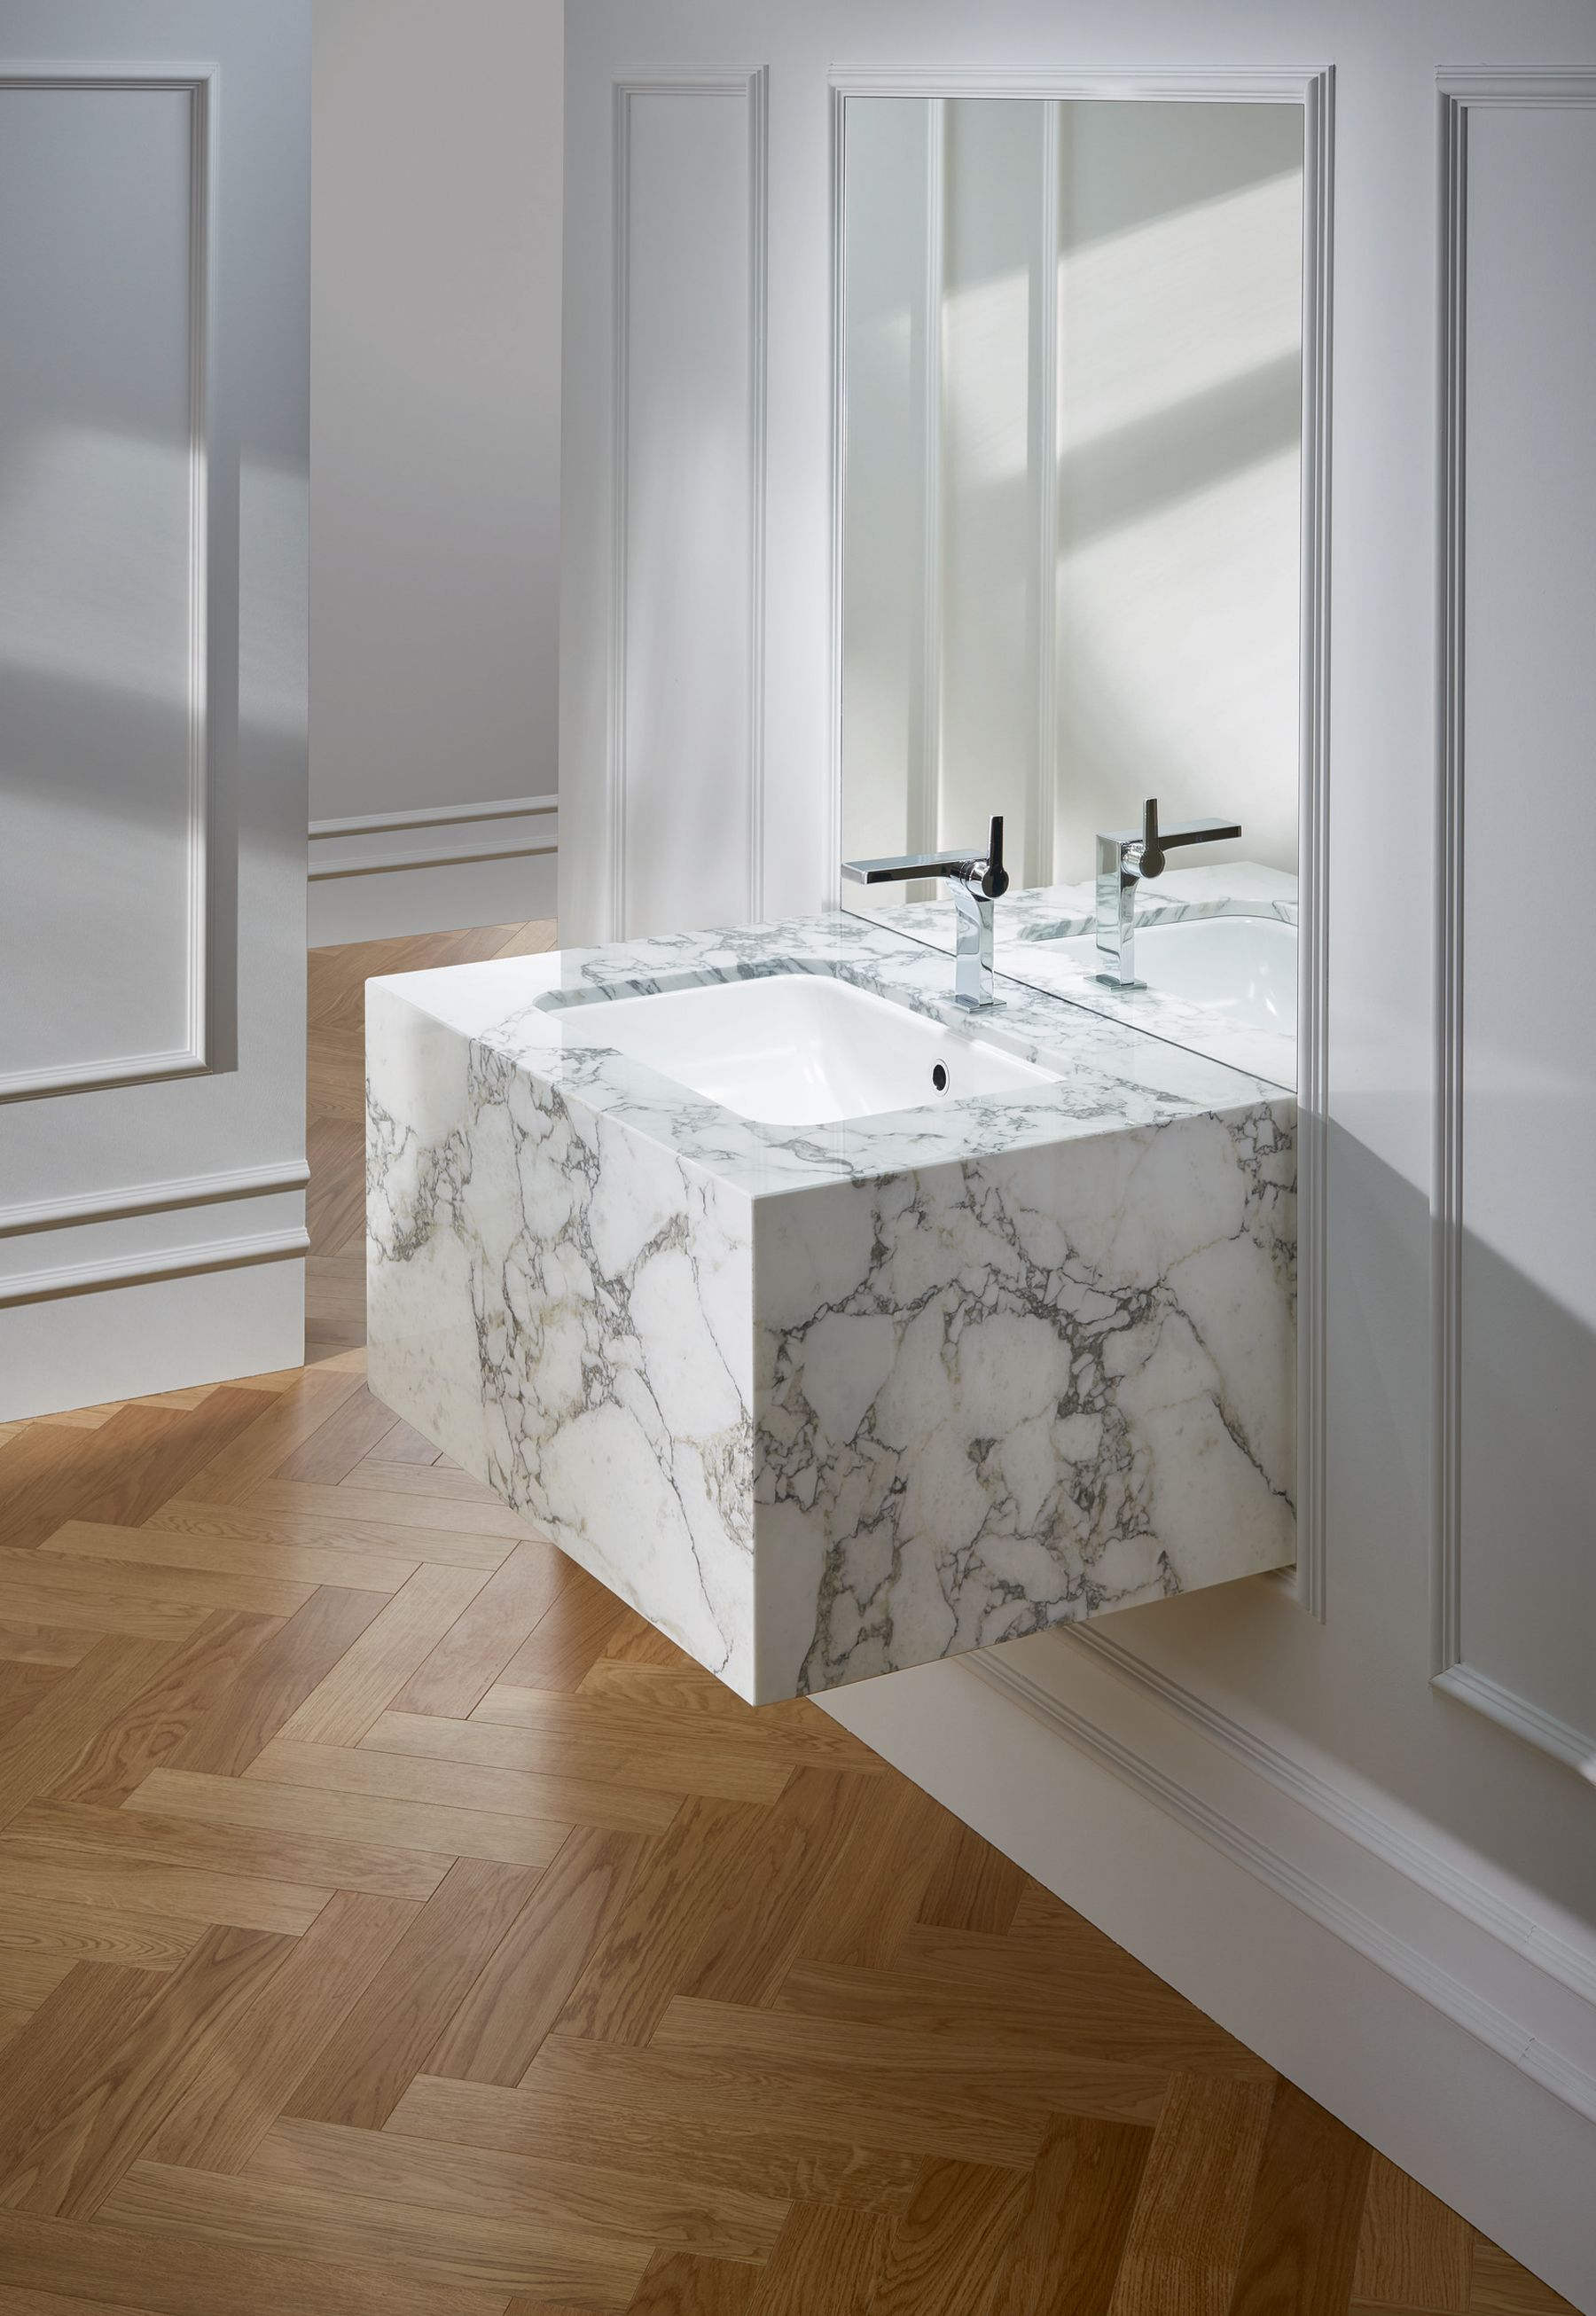 Badezimmer Set Novel Washbasin Undermountwashbasin Bathroom Marble Marmor Marmorbad